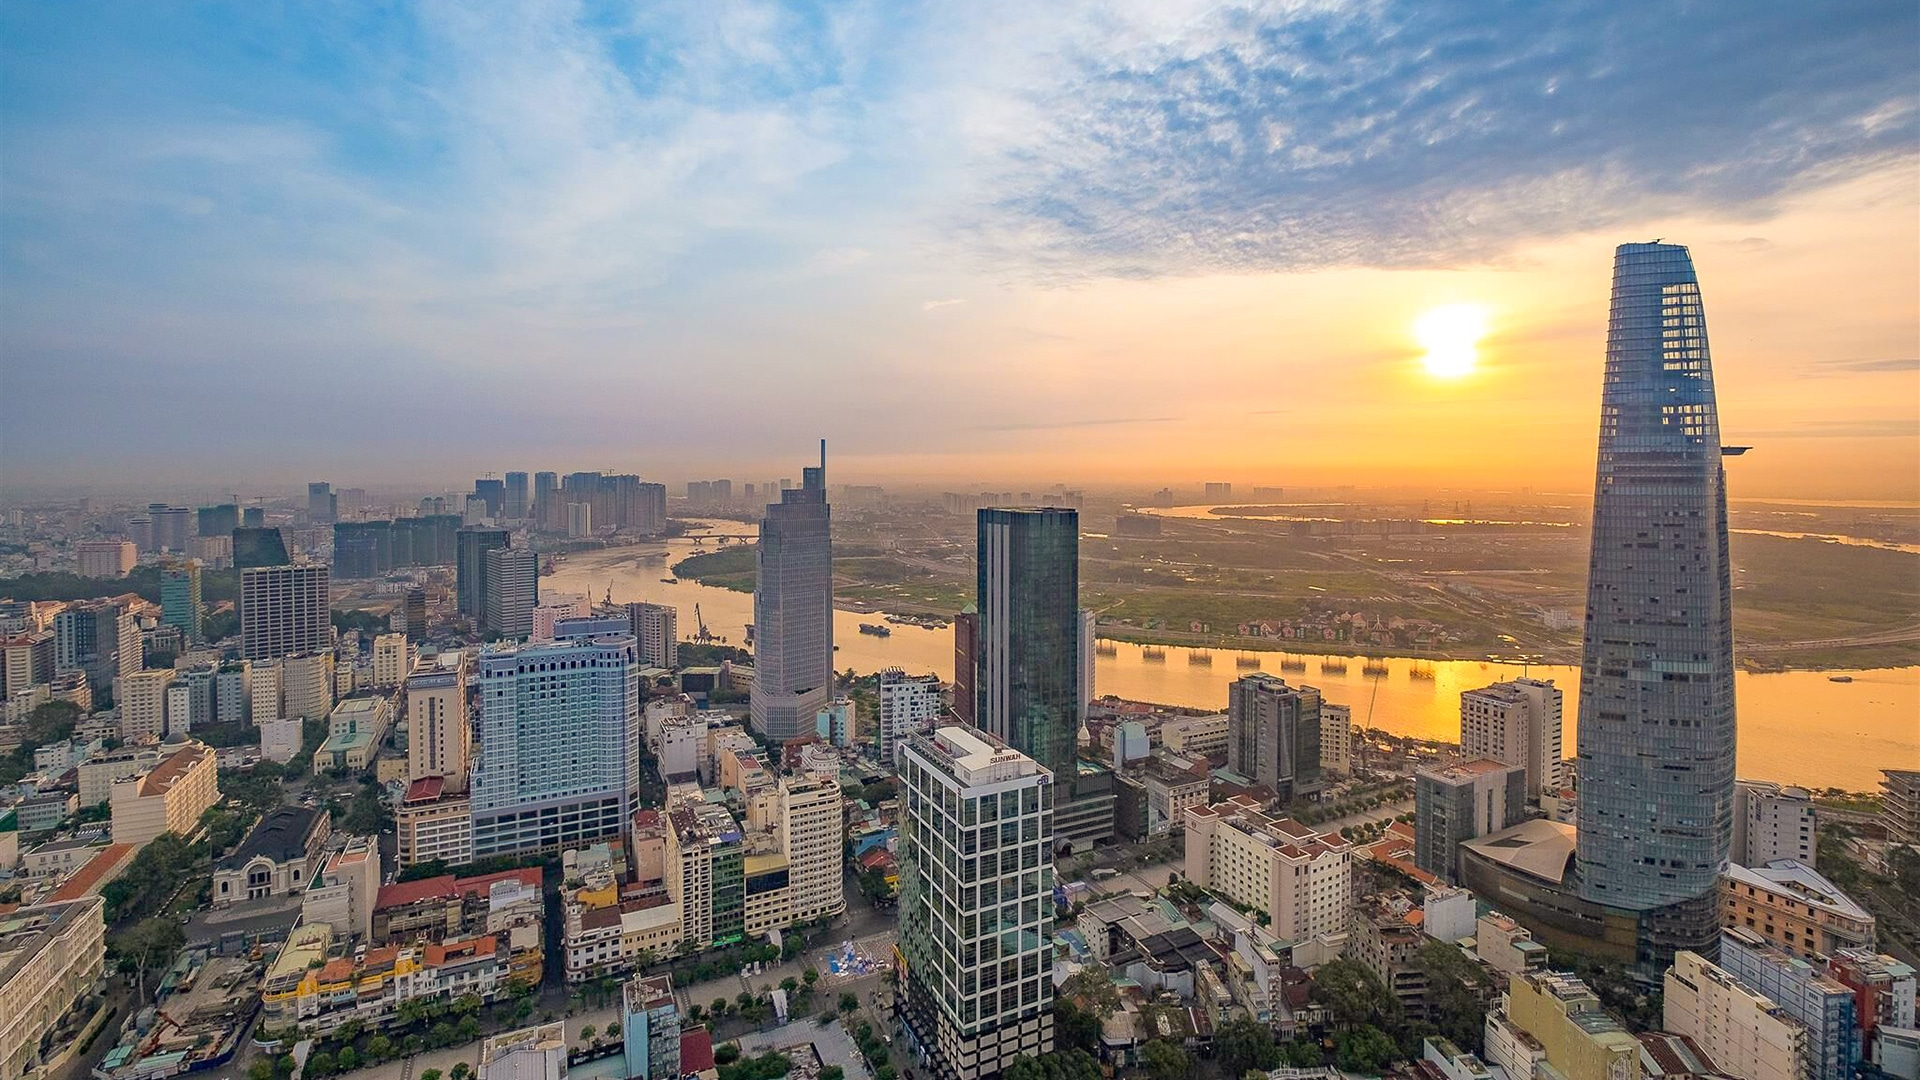 Sunset View on Saigon River